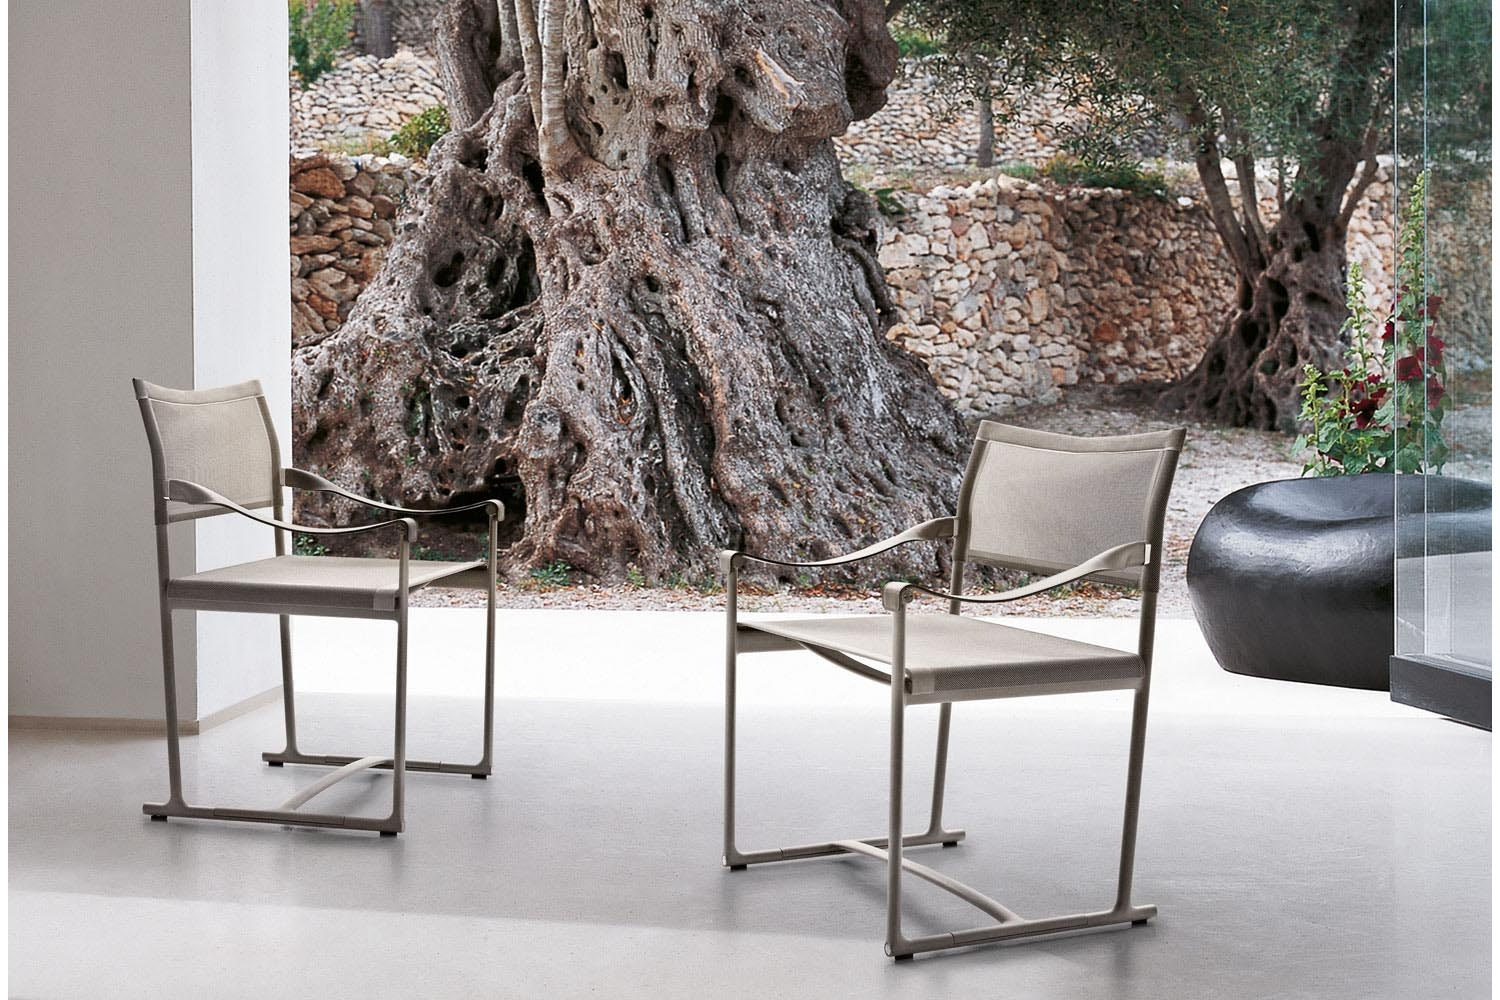 Mirto Chair with Arms by Antonio Citterio for B&B Italia